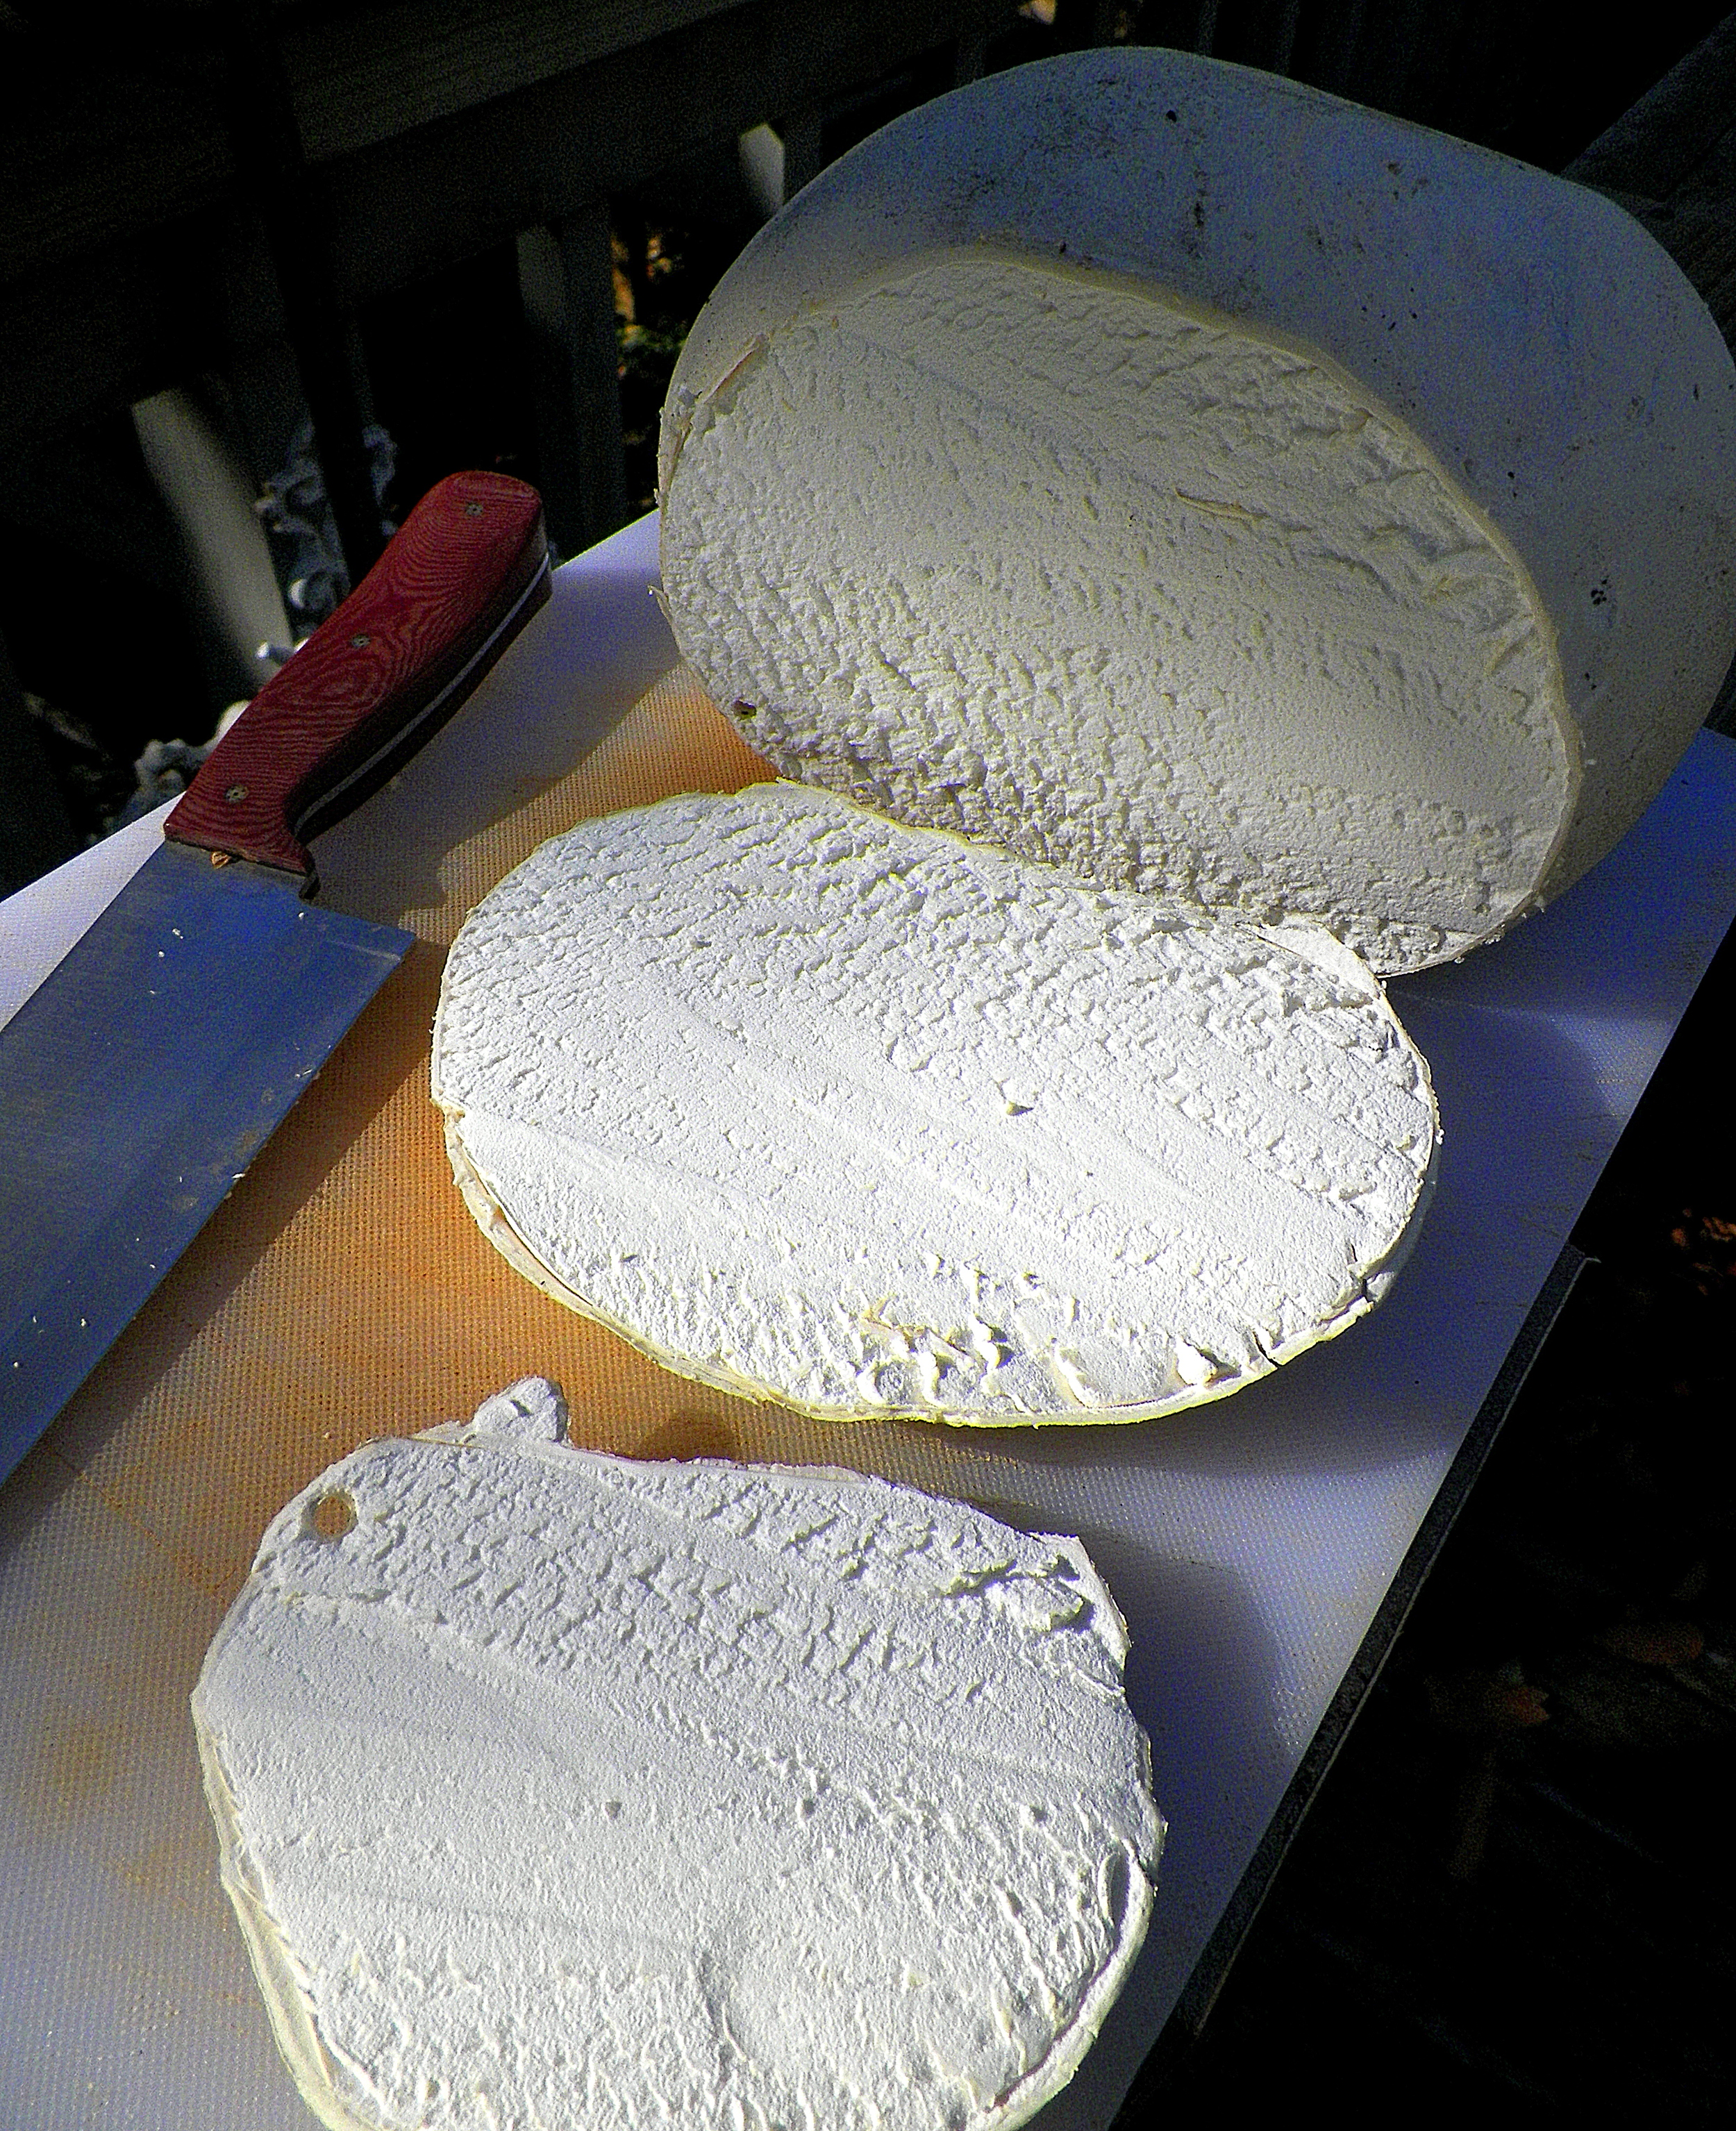 Slicing a giant puffball. Note the clean white flesh and leather-like outer skin. i sliced this one with a chef's knife, which makes a little rougher cut, so that you can get a better sense of the texture of the meat of the mushroom. Compare to the image below of the puffball I sliced with a fillet knife.